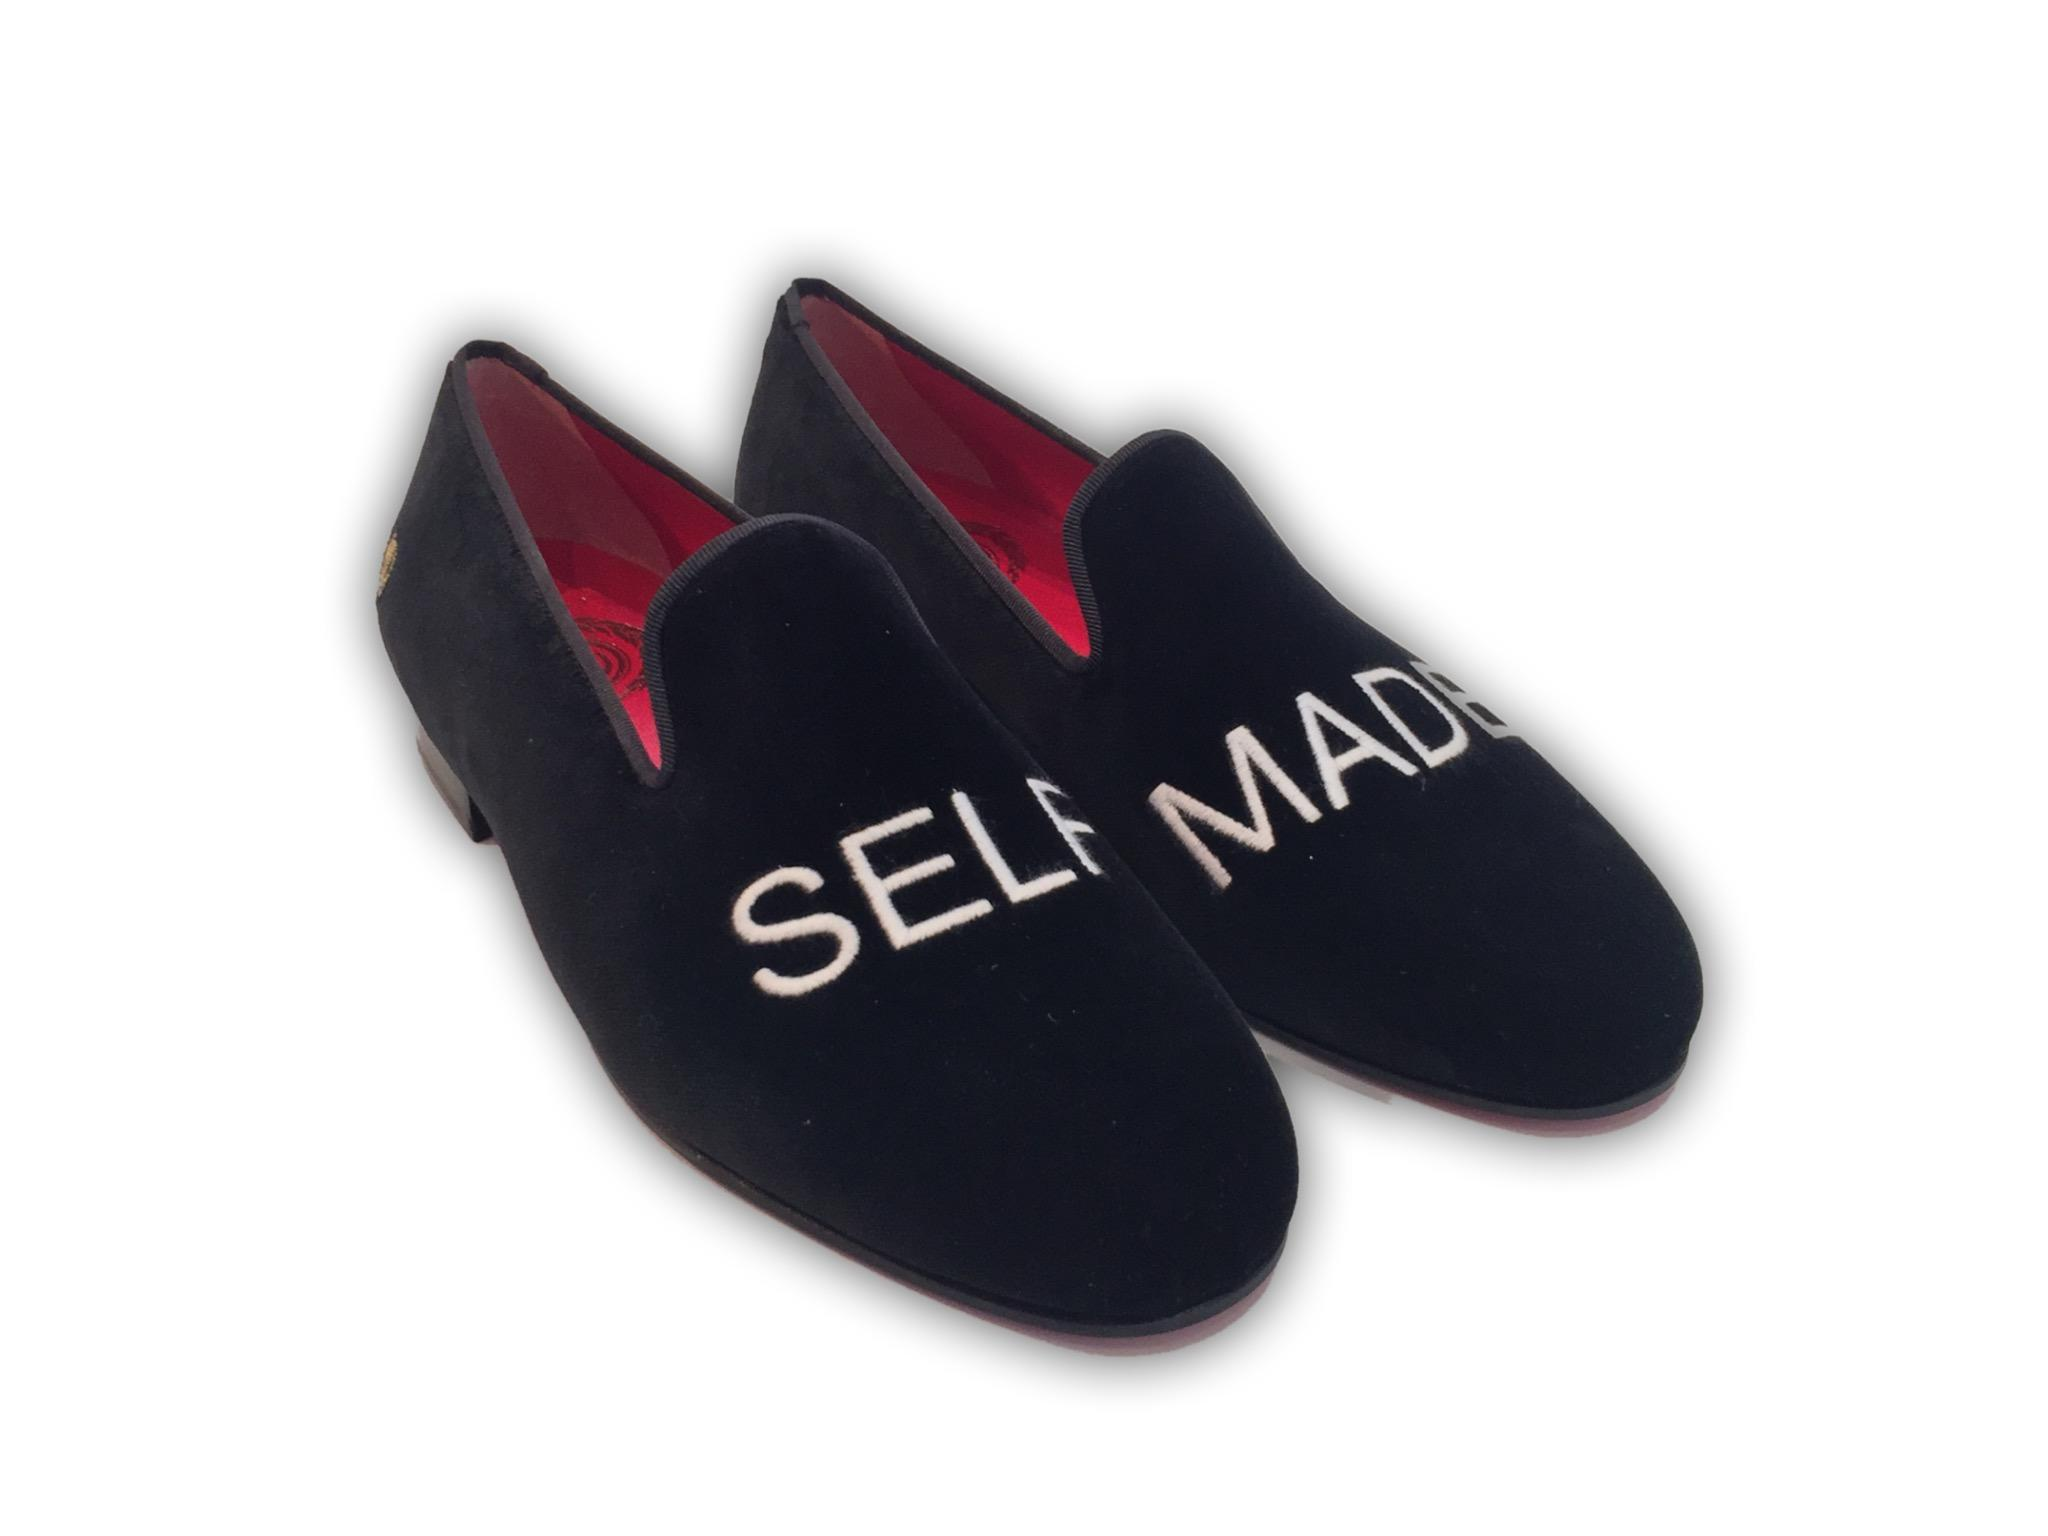 Manor of London SELF MADE Mens Black Velvet Leather Slip On Embroidery Luxury Custom Initials Slip On Front View